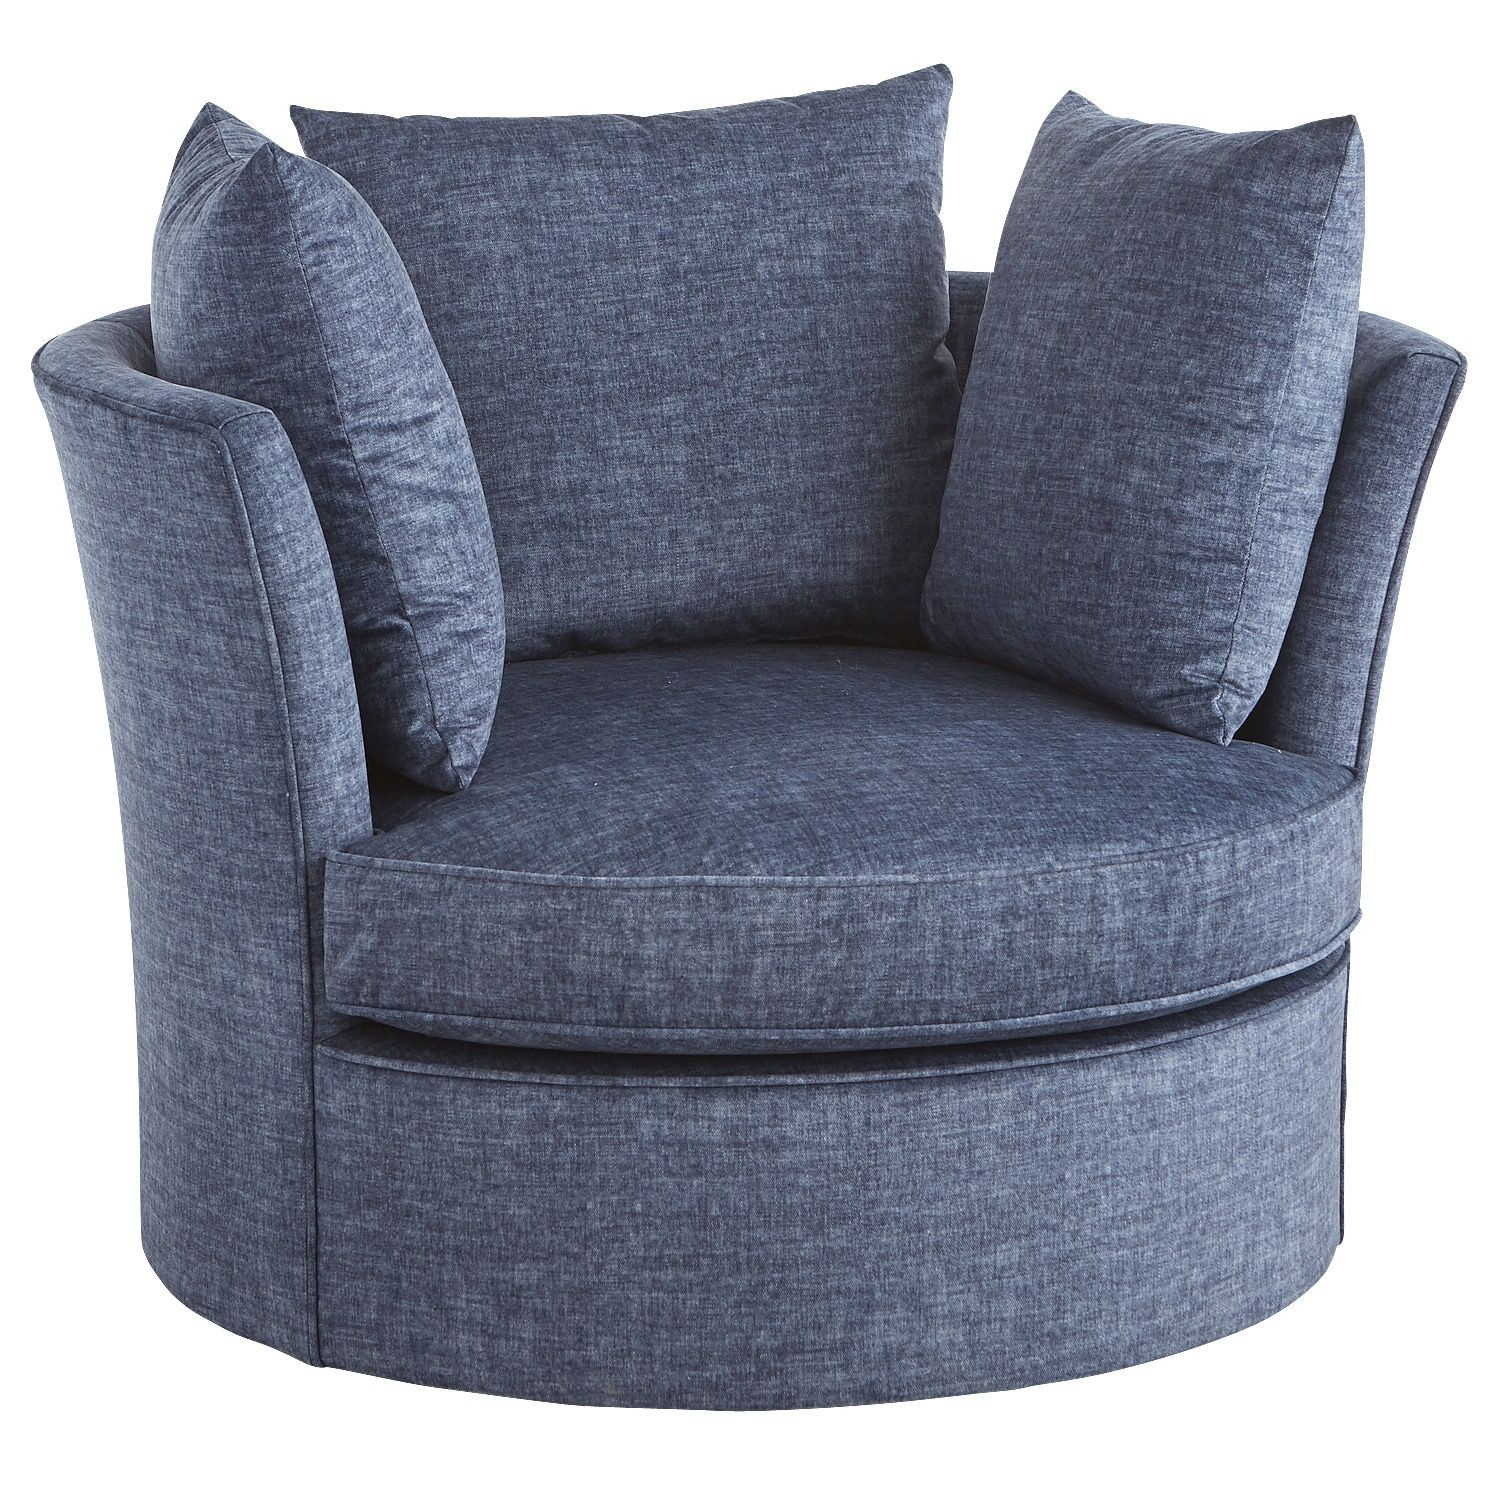 Ike Navy Blue Oversized Swivel Chair | Products | Pinterest | Chair Regarding Harbor Grey Swivel Accent Chairs (View 10 of 25)